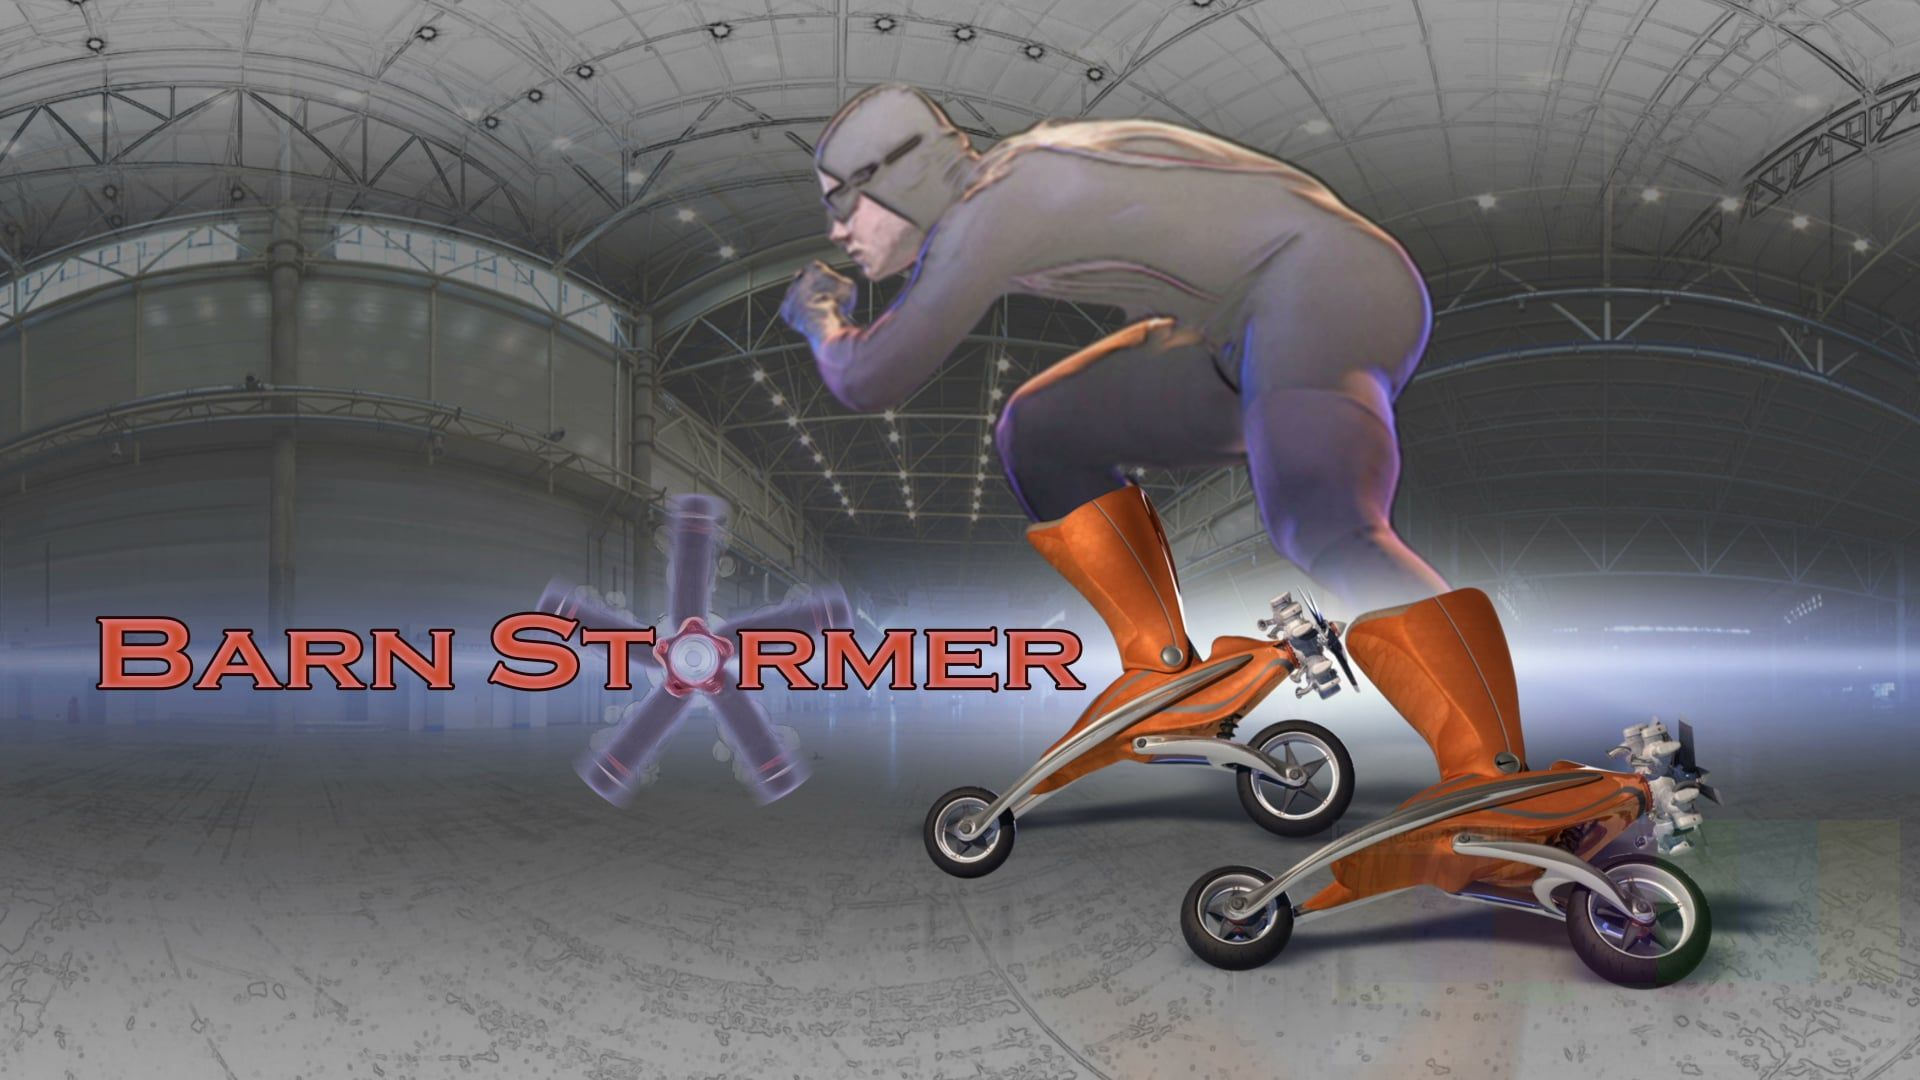 BarnStormer | what happens when you combine speed skates with a biplane? Visualization of powered inline skates concept design.